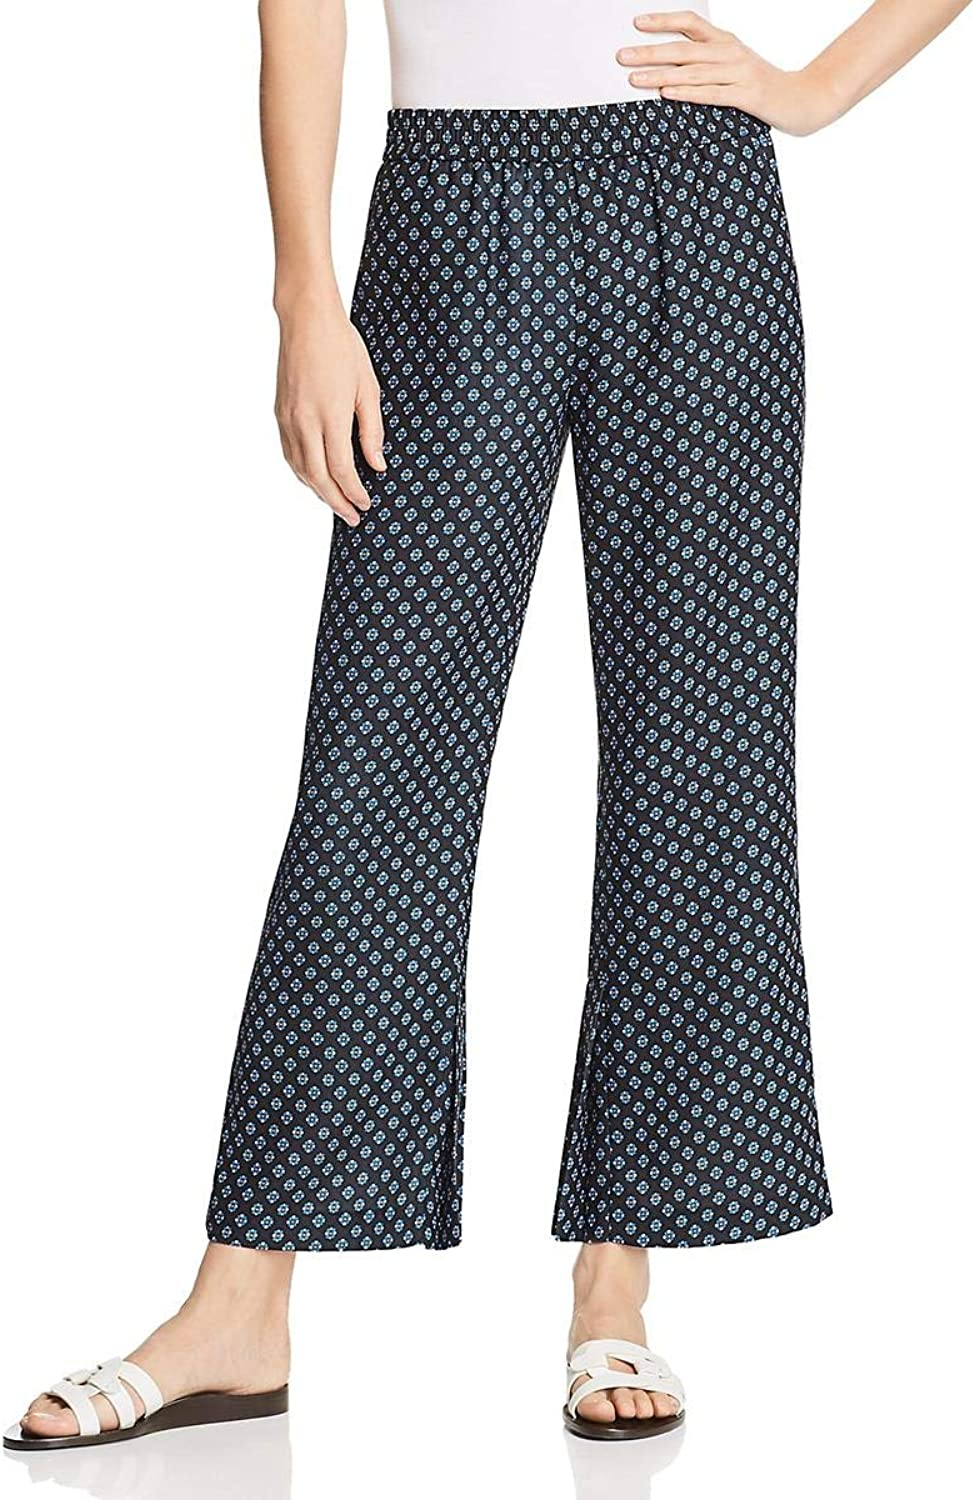 Le Gali Womens Magee Crepe Flat Front Casual Pants